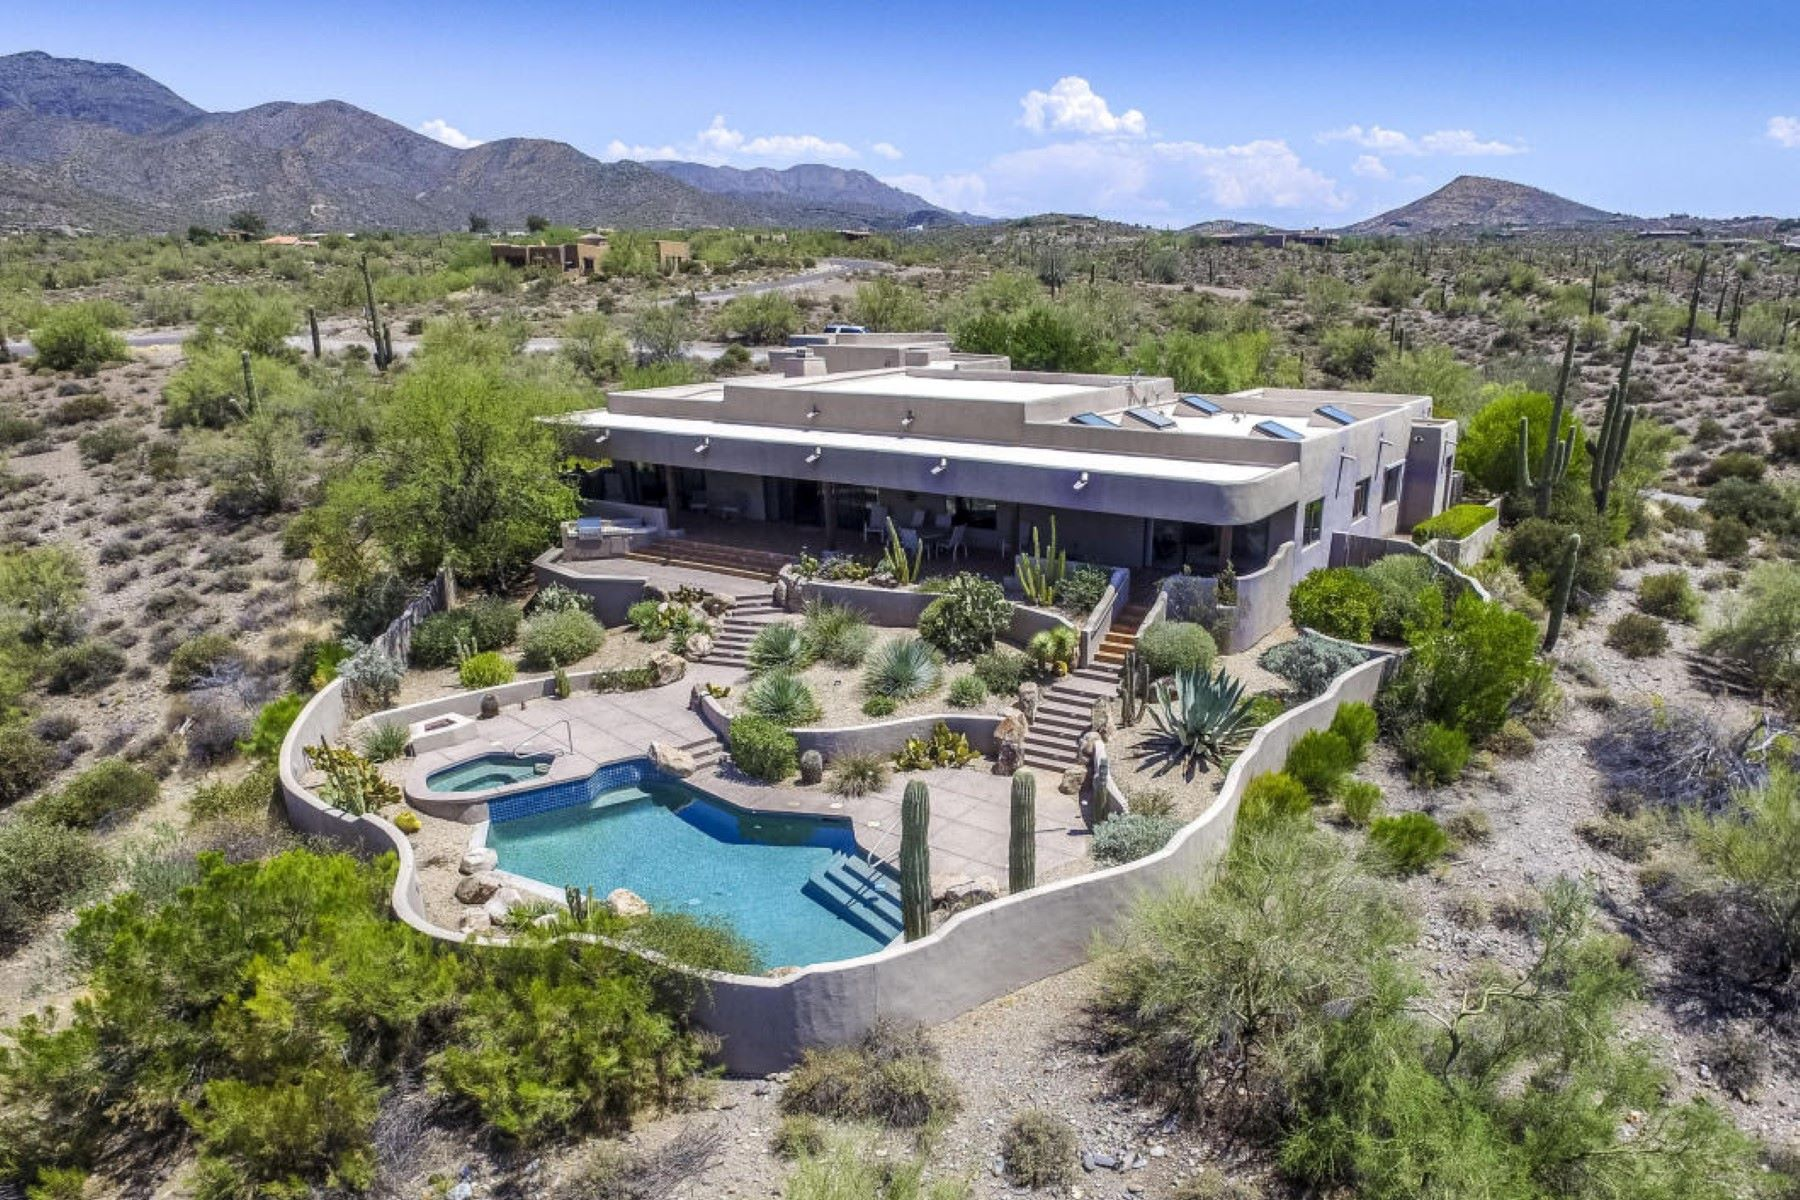 Villa per Vendita alle ore Exquisite custom home on a beautiful 4.3 acre lot with magnificent views. 7455 E Grapevine Rd Cave Creek, Arizona, 85331 Stati Uniti